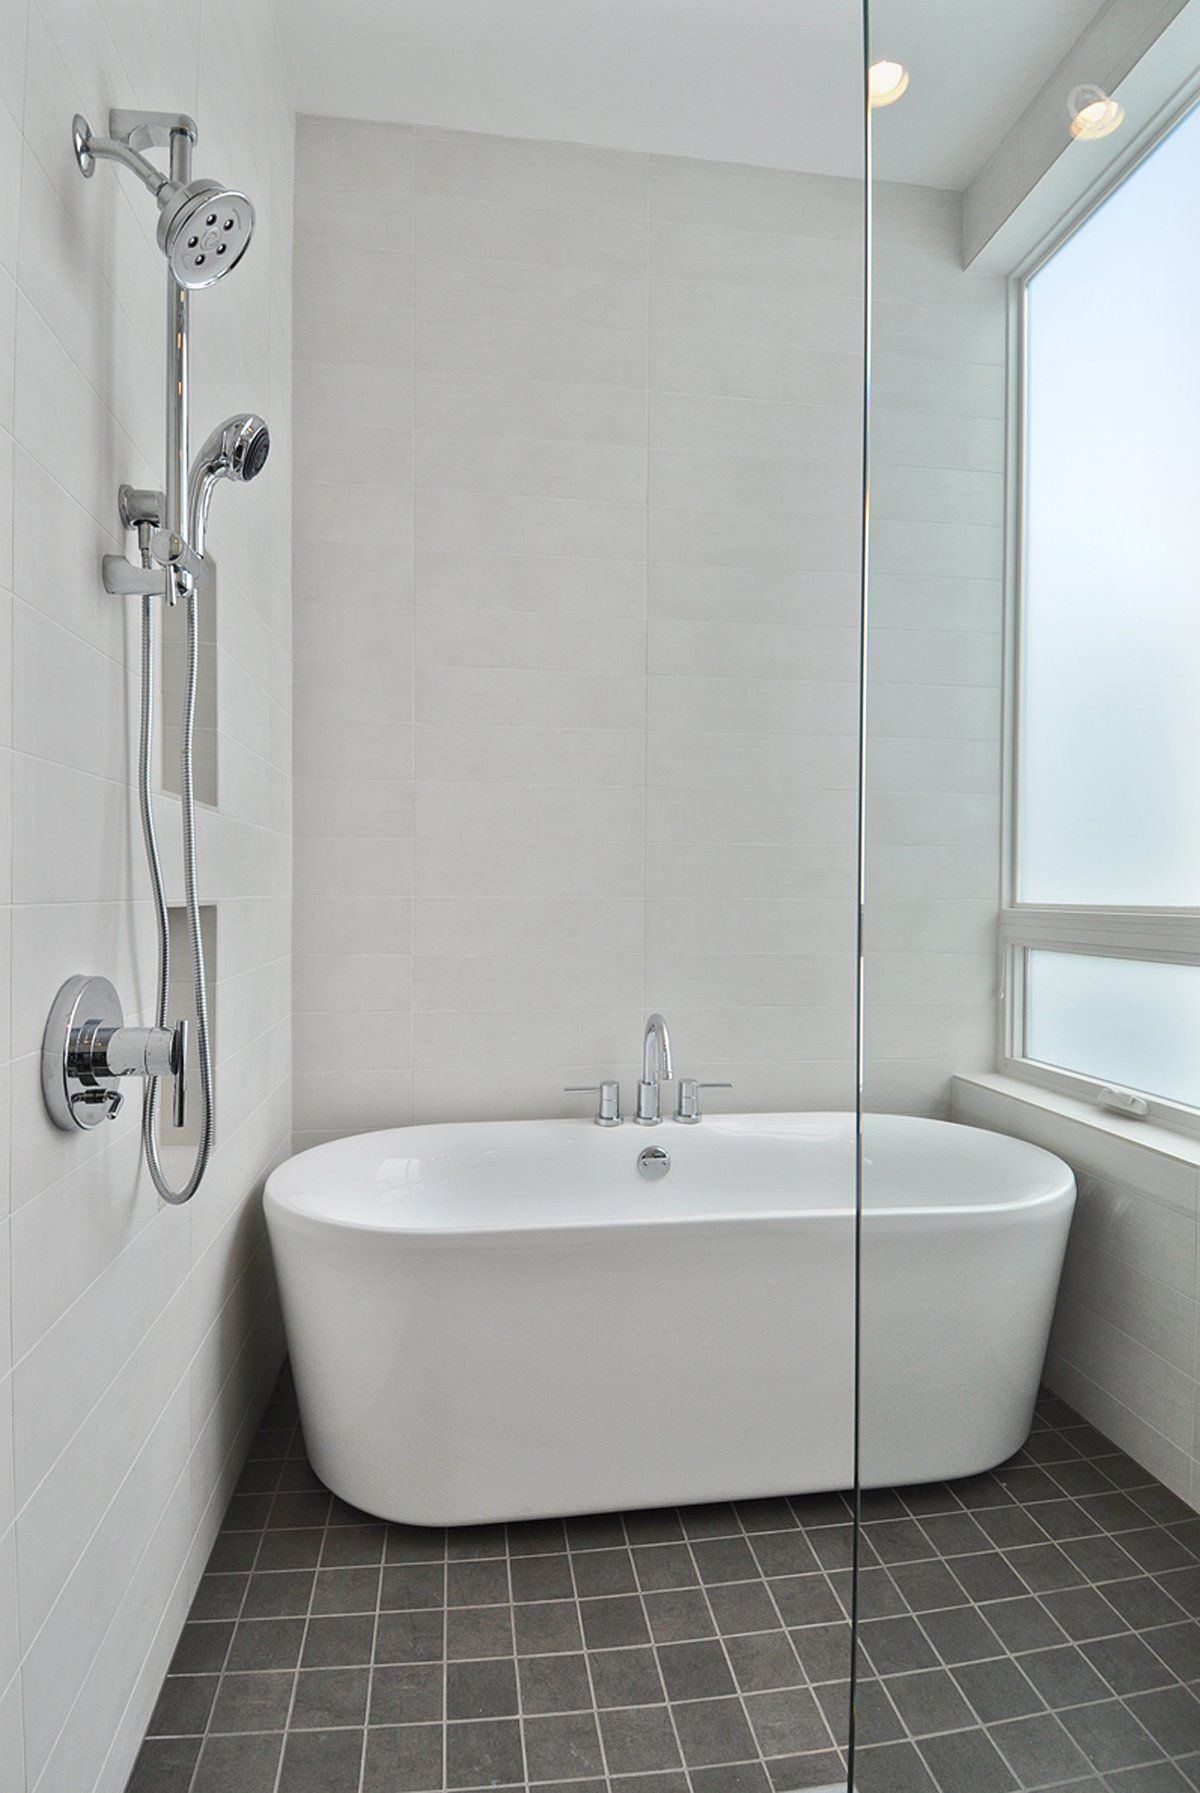 Small Freestanding Tub